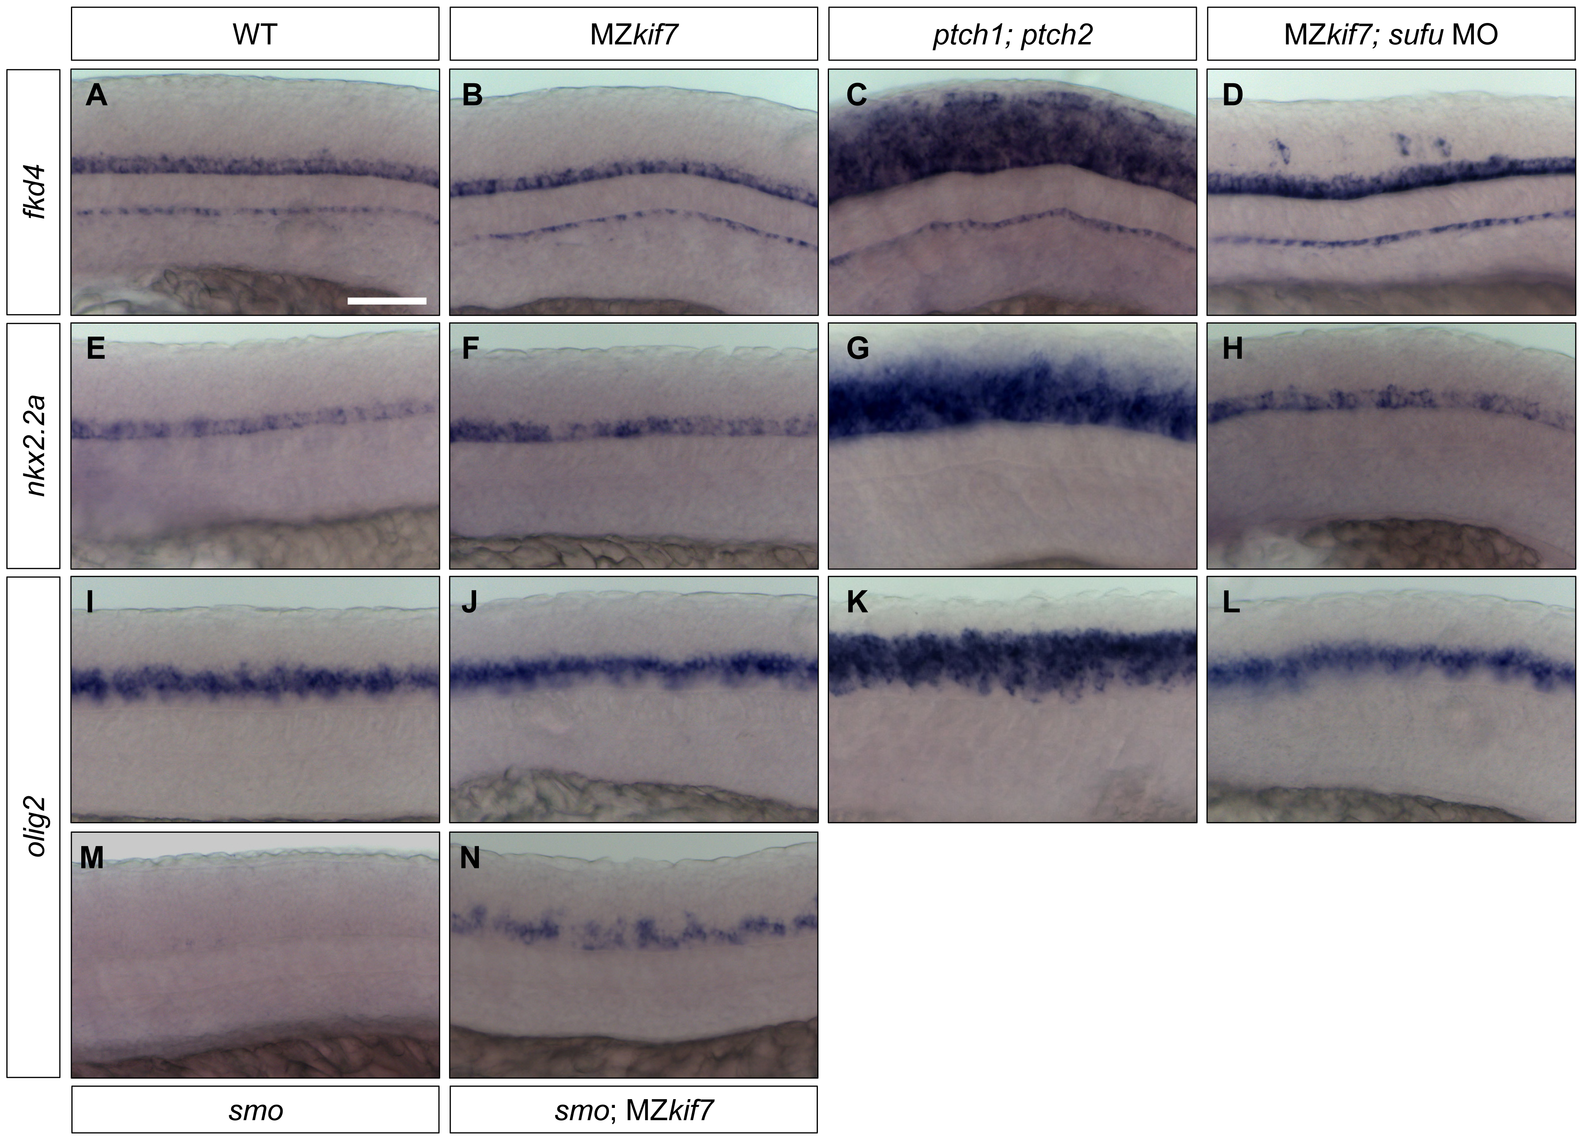 Hh target gene regulation in the neural tube is largely independent of Kif7 and Sufu function.